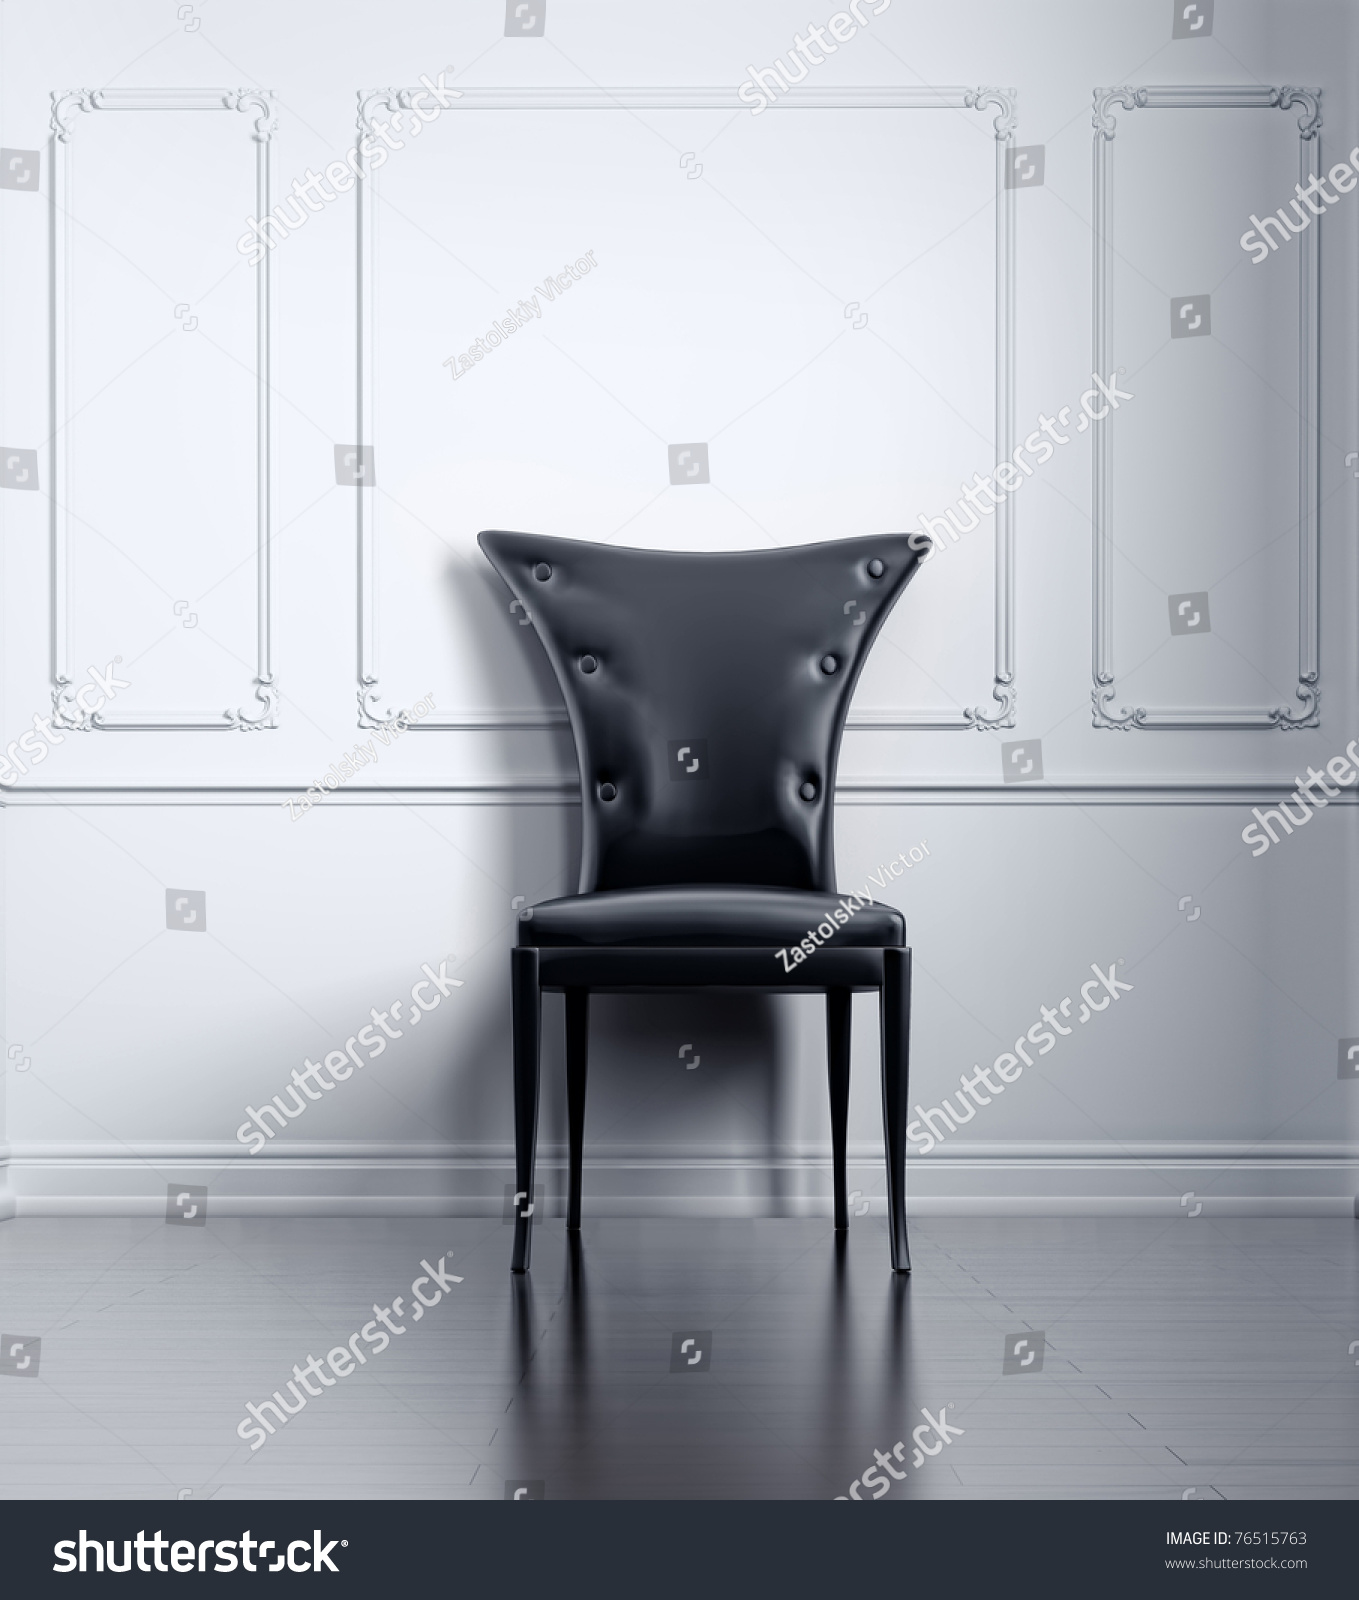 Black and white chair photography - Save To A Lightbox